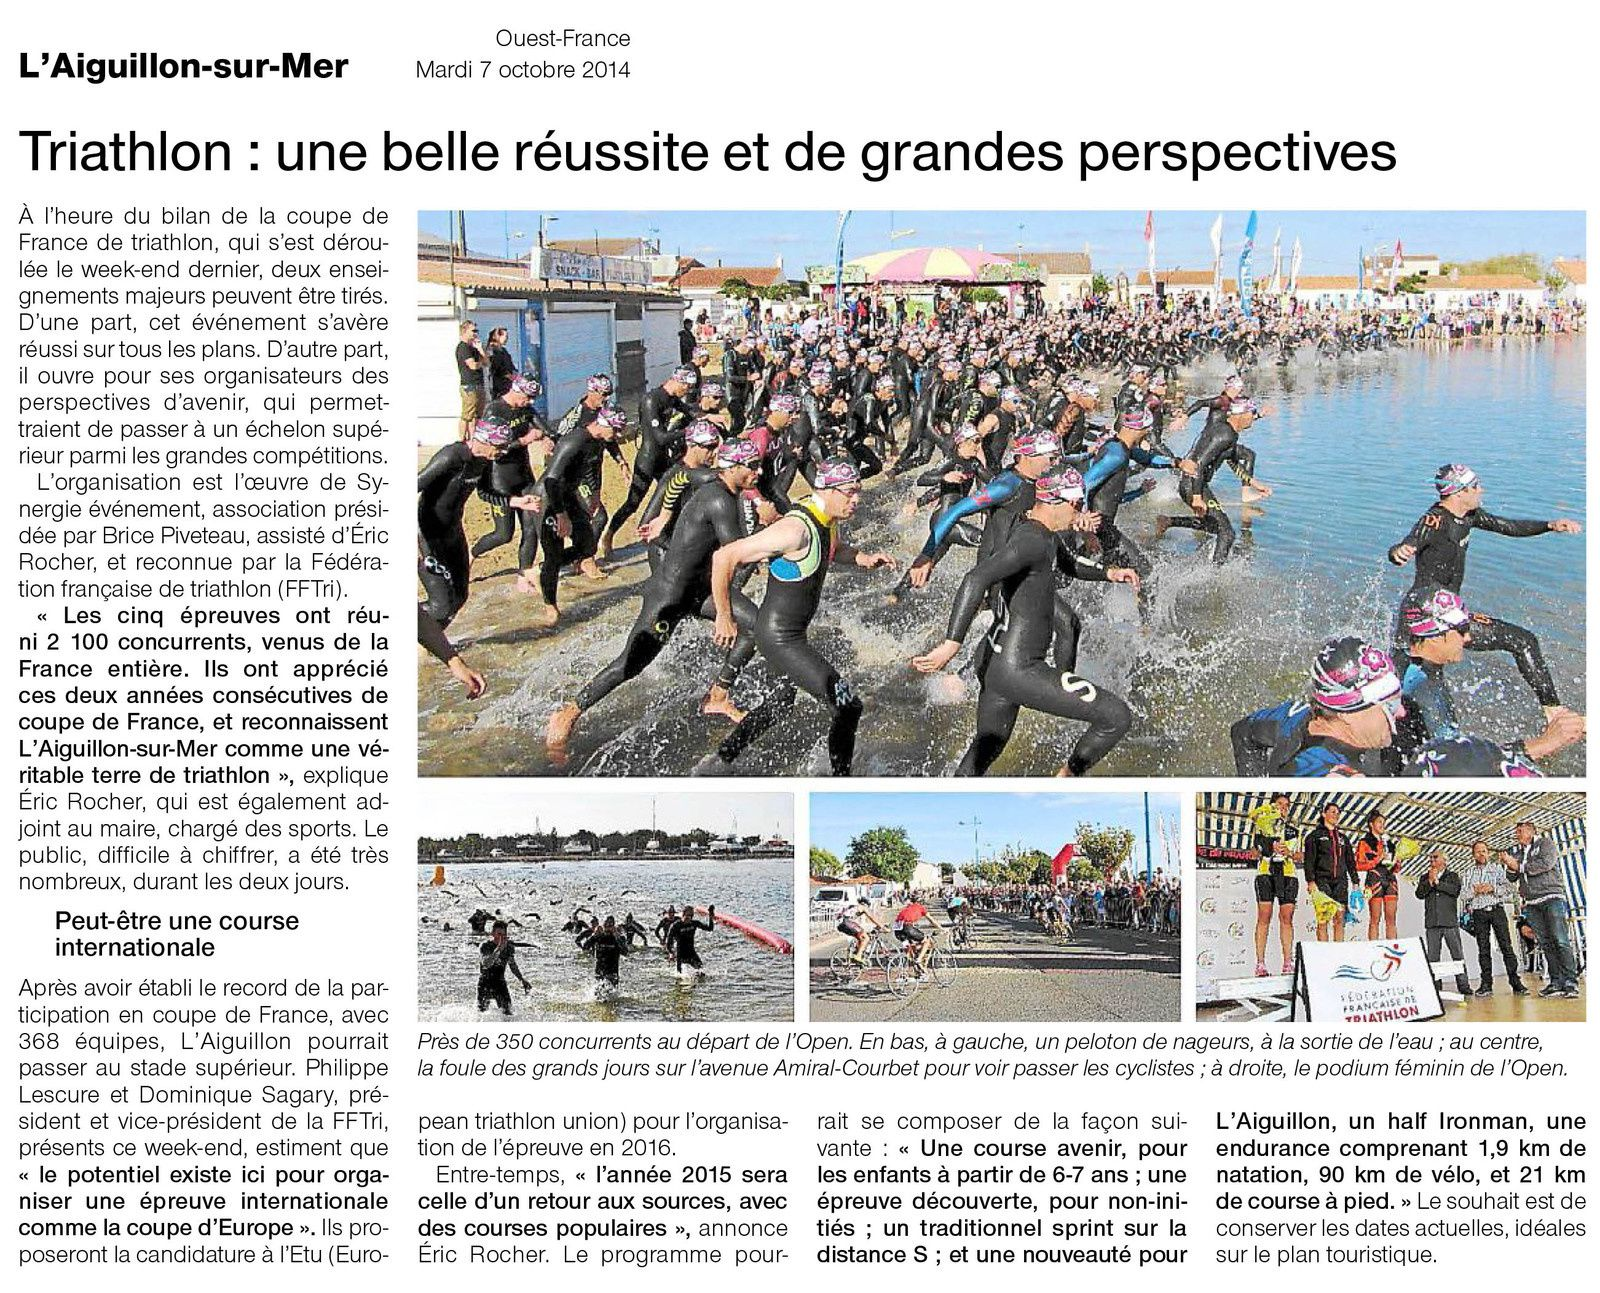 OUEST FRANCE 07 10 2014